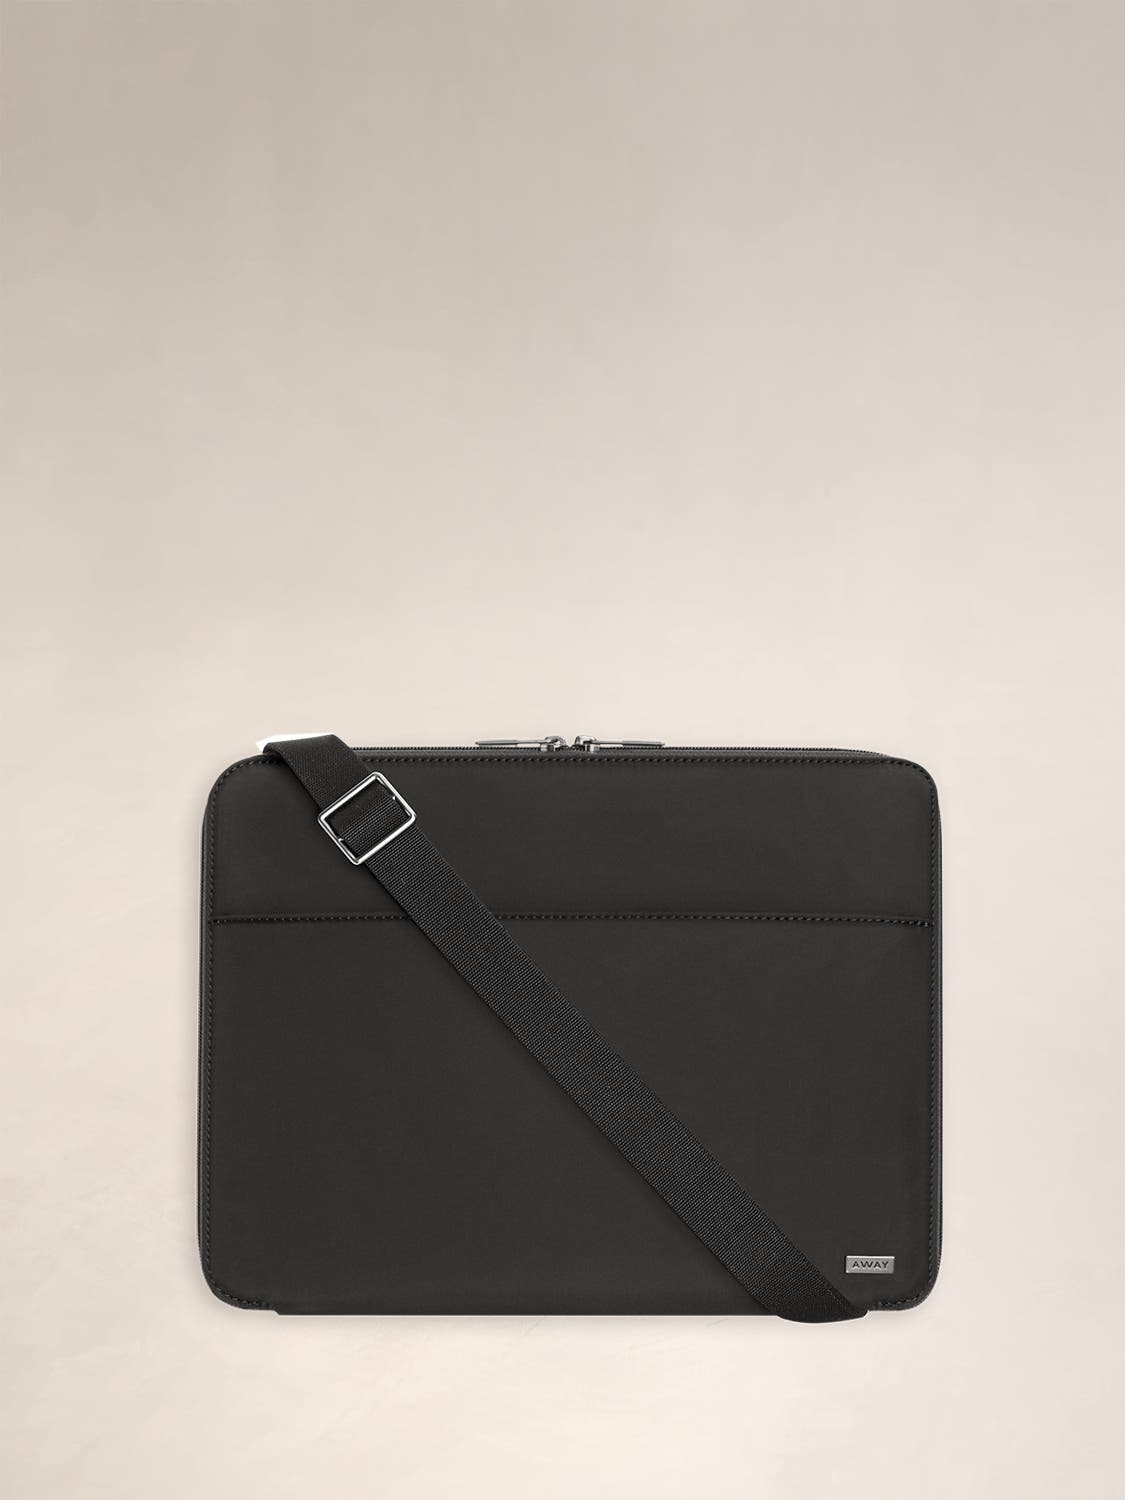 Front view of the Away Portfolio in the color black with a shoulder strap shown